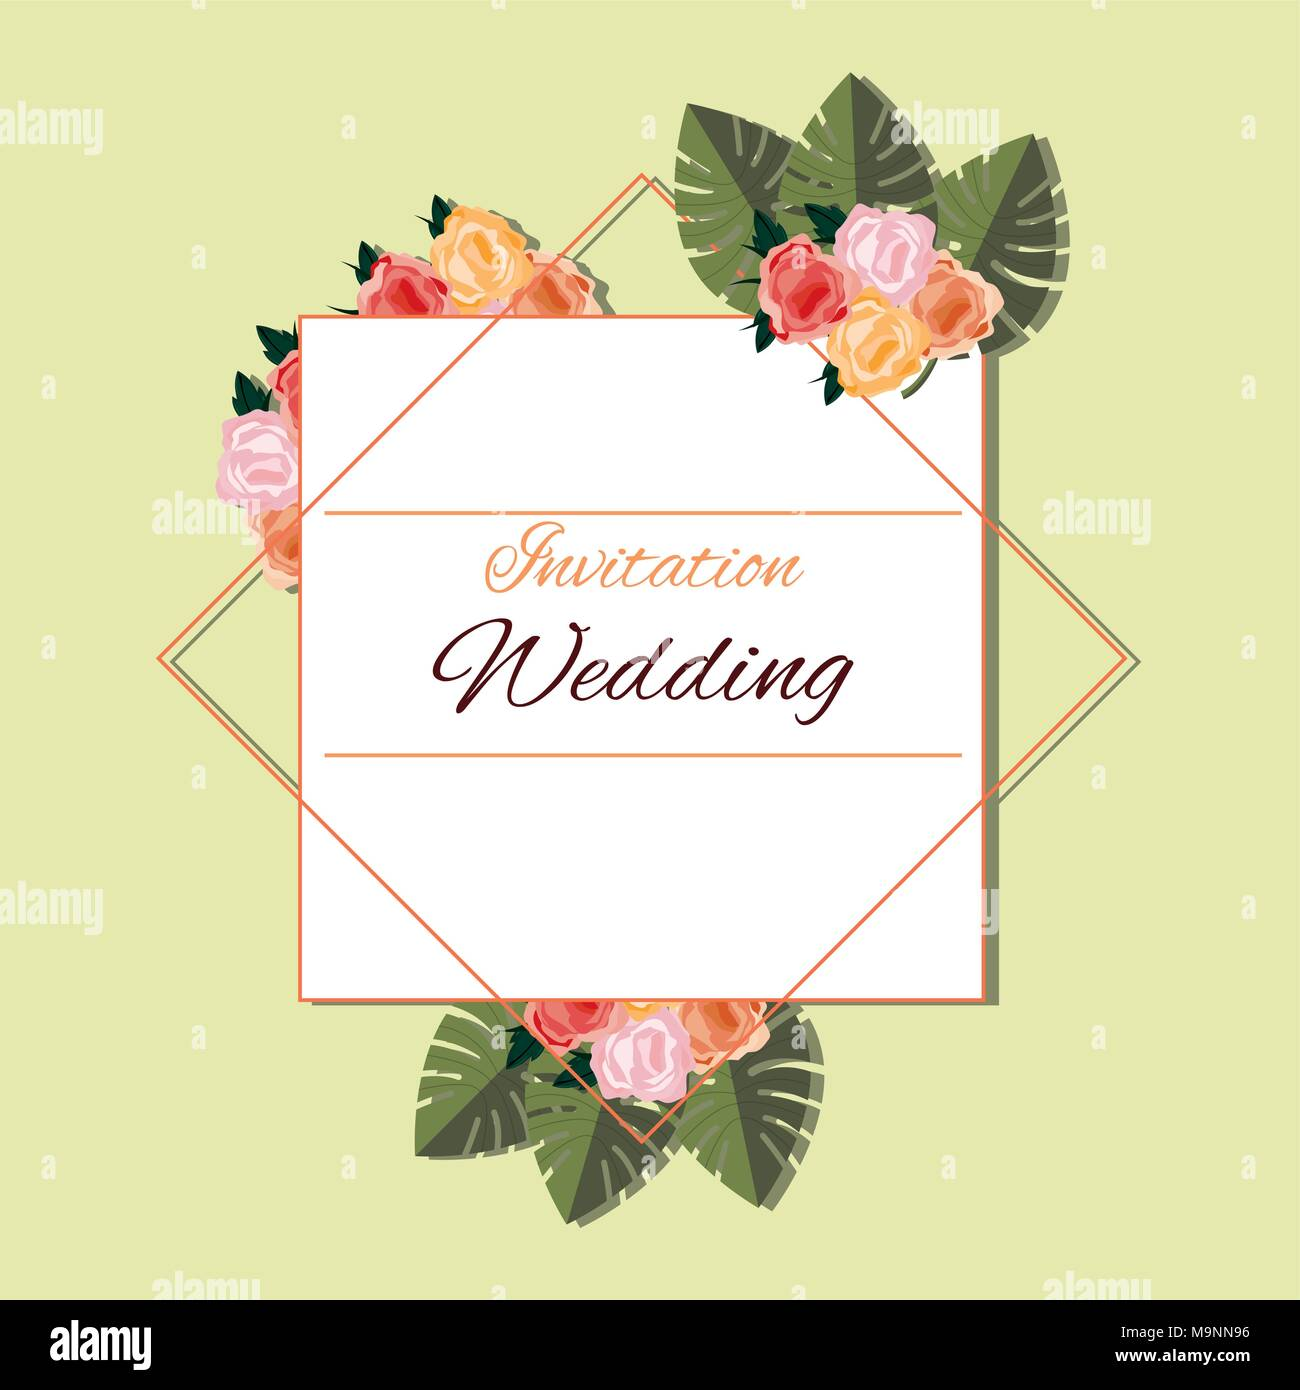 wedding invitation design with decorative frame and tropical